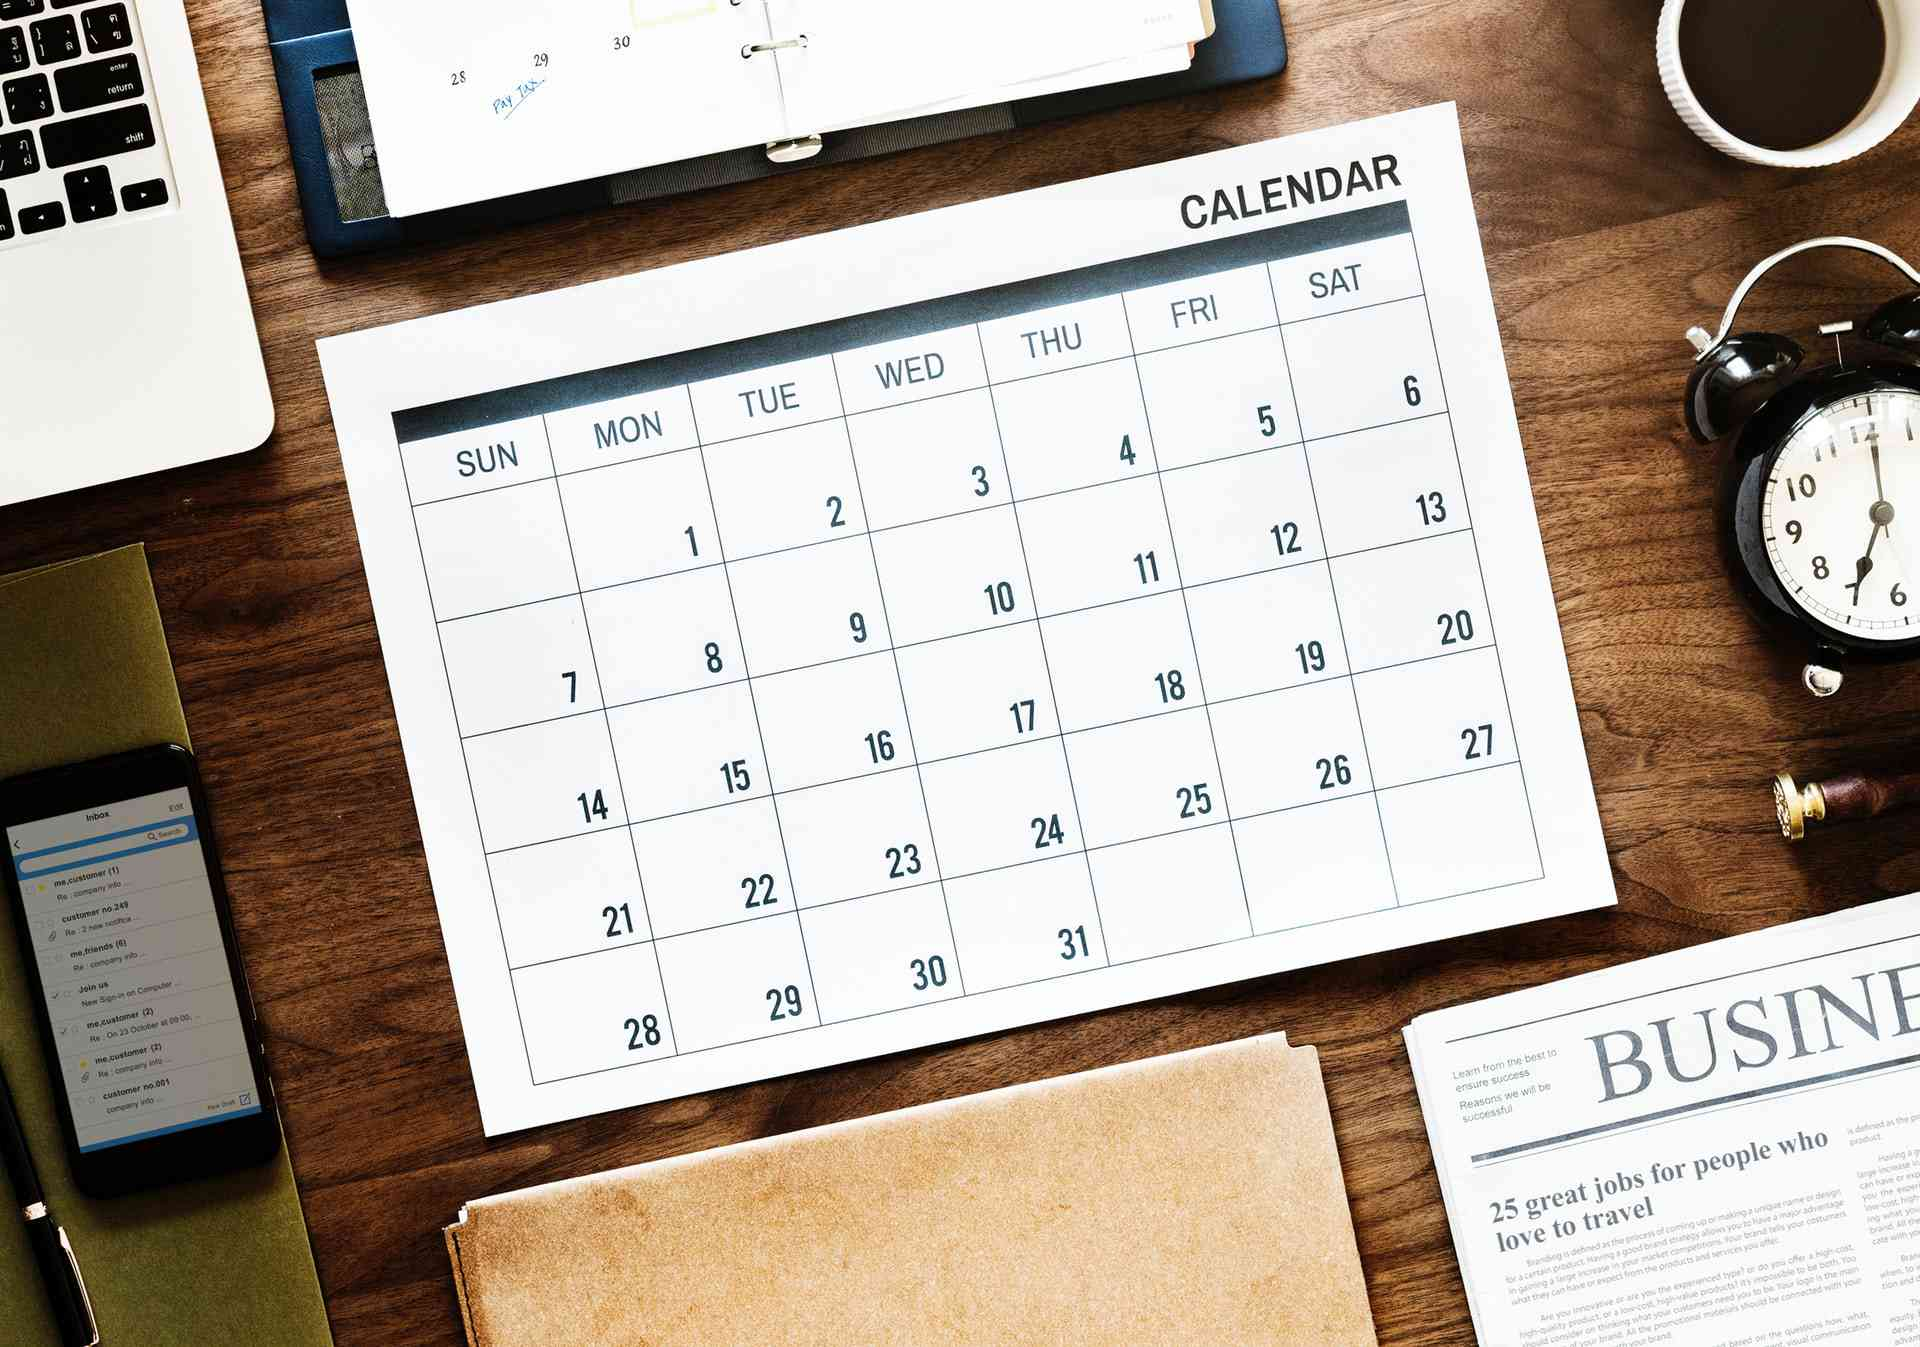 A calendar sitting on a desk with other office tools.